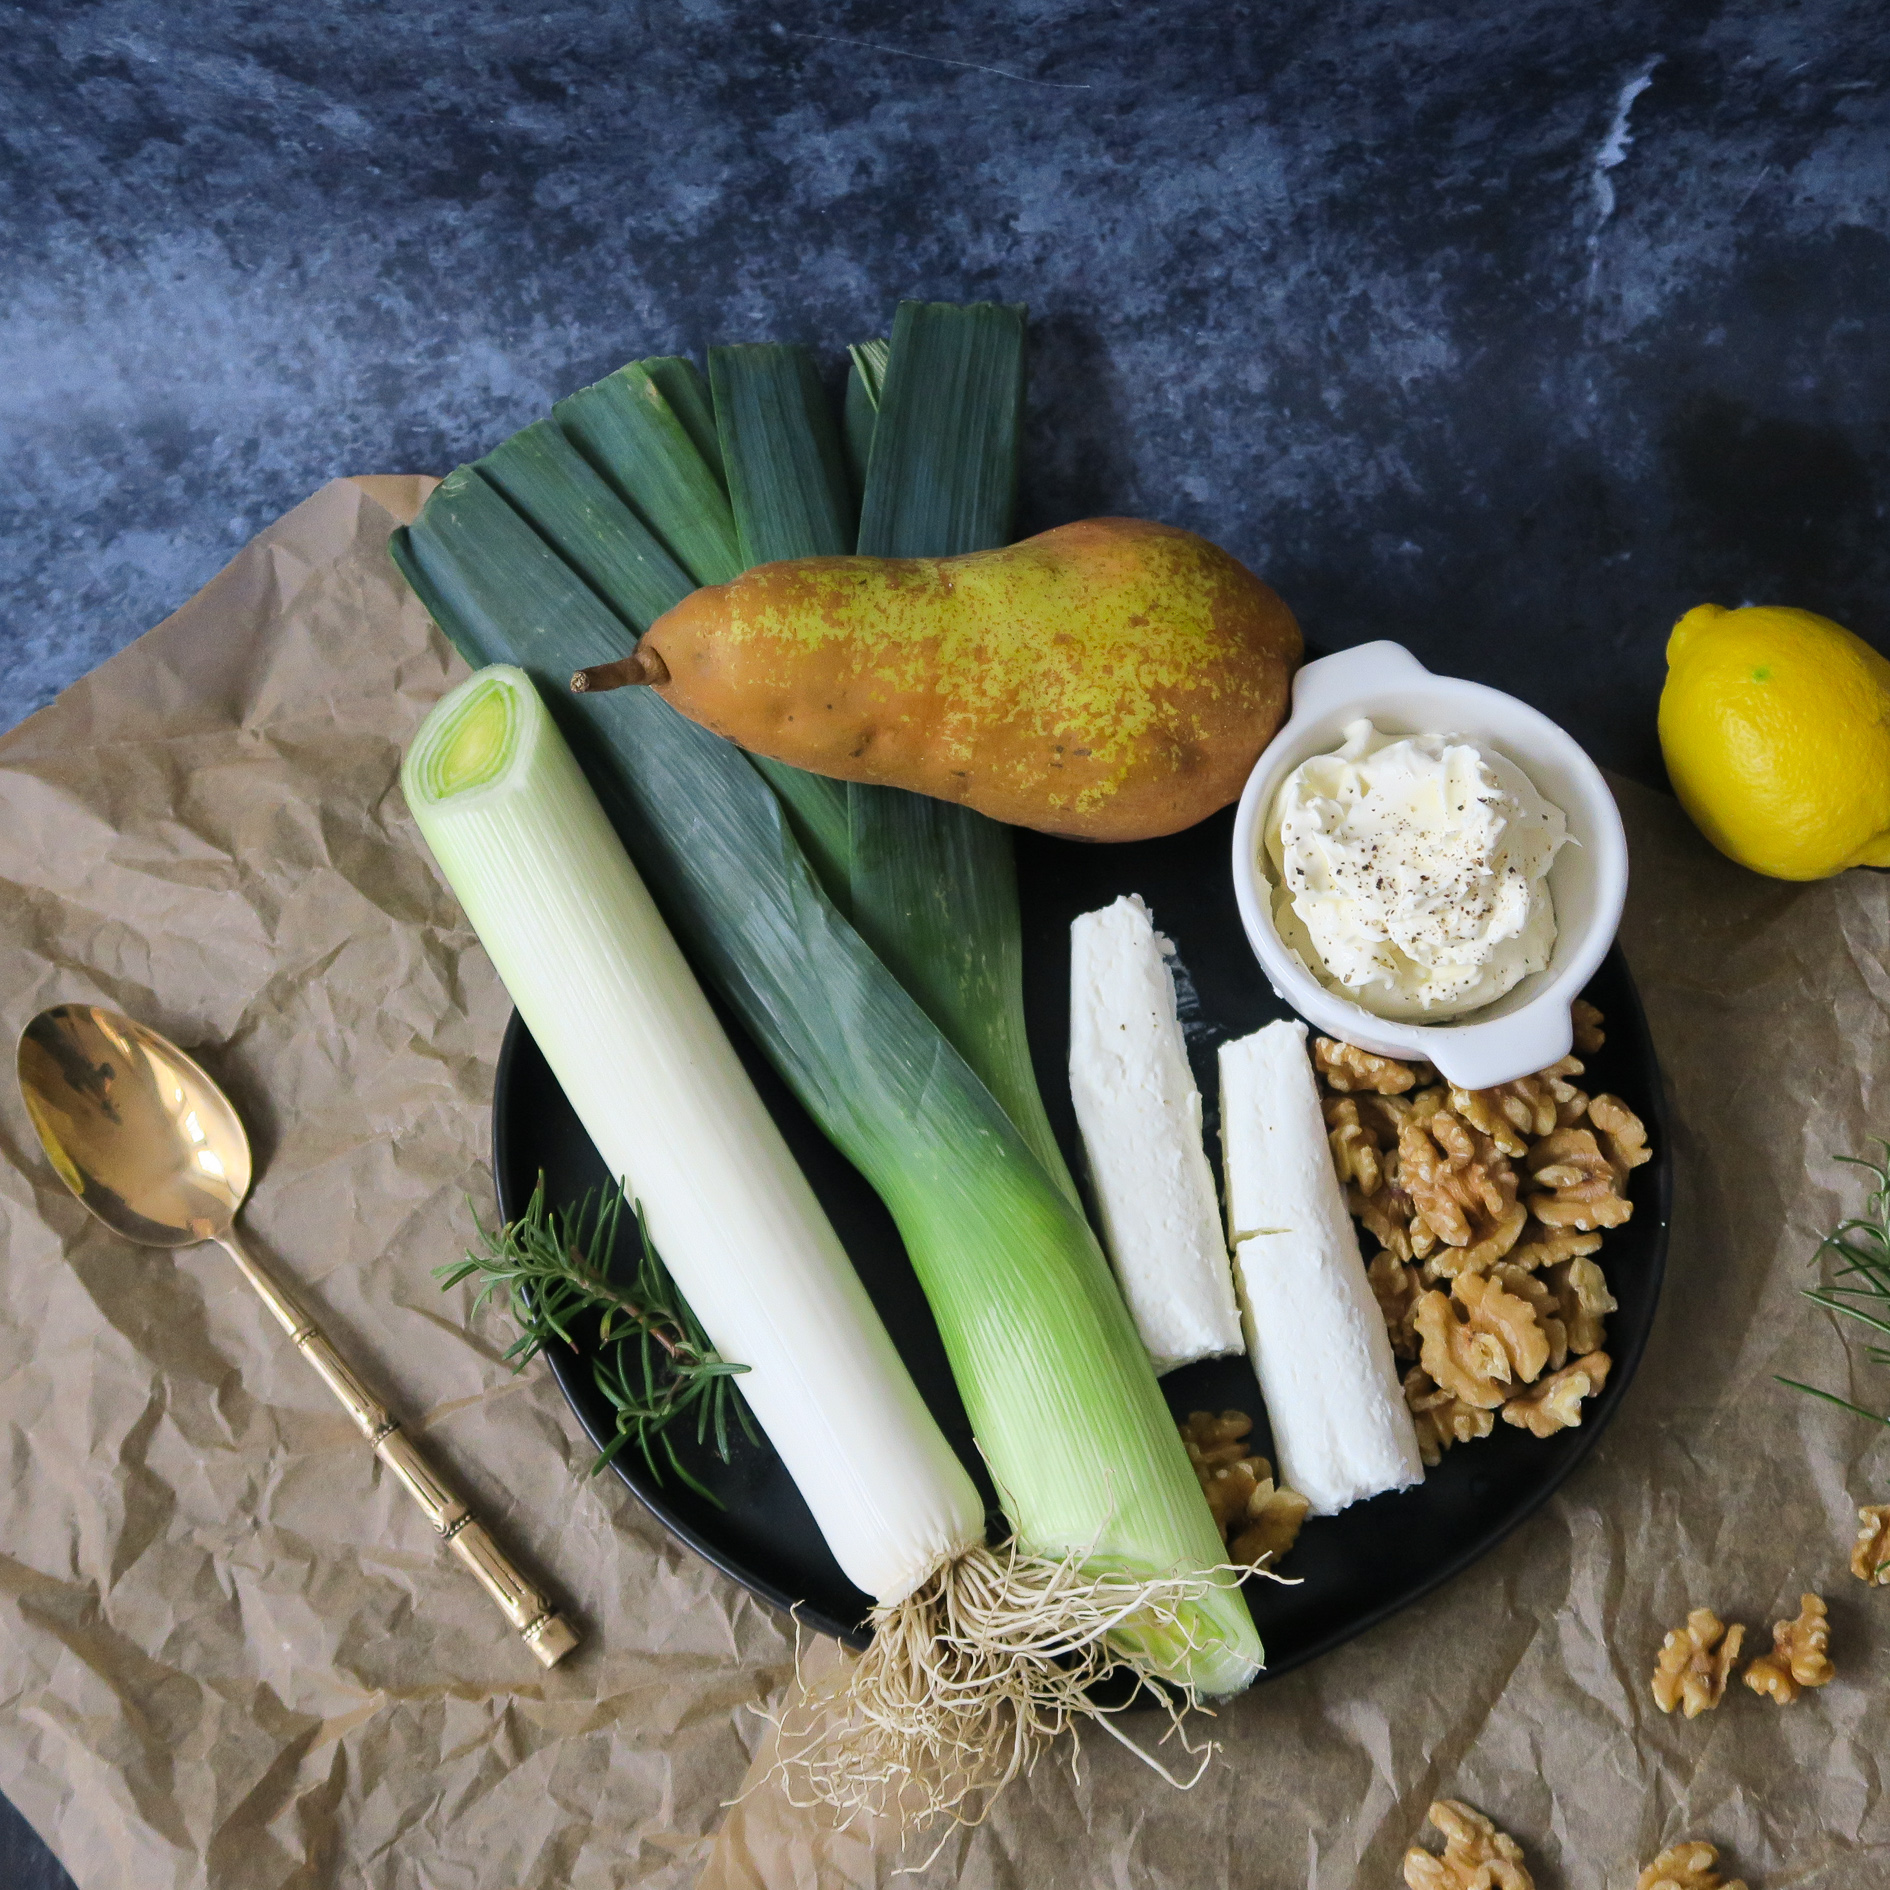 Healthy ingredients for a savory galette